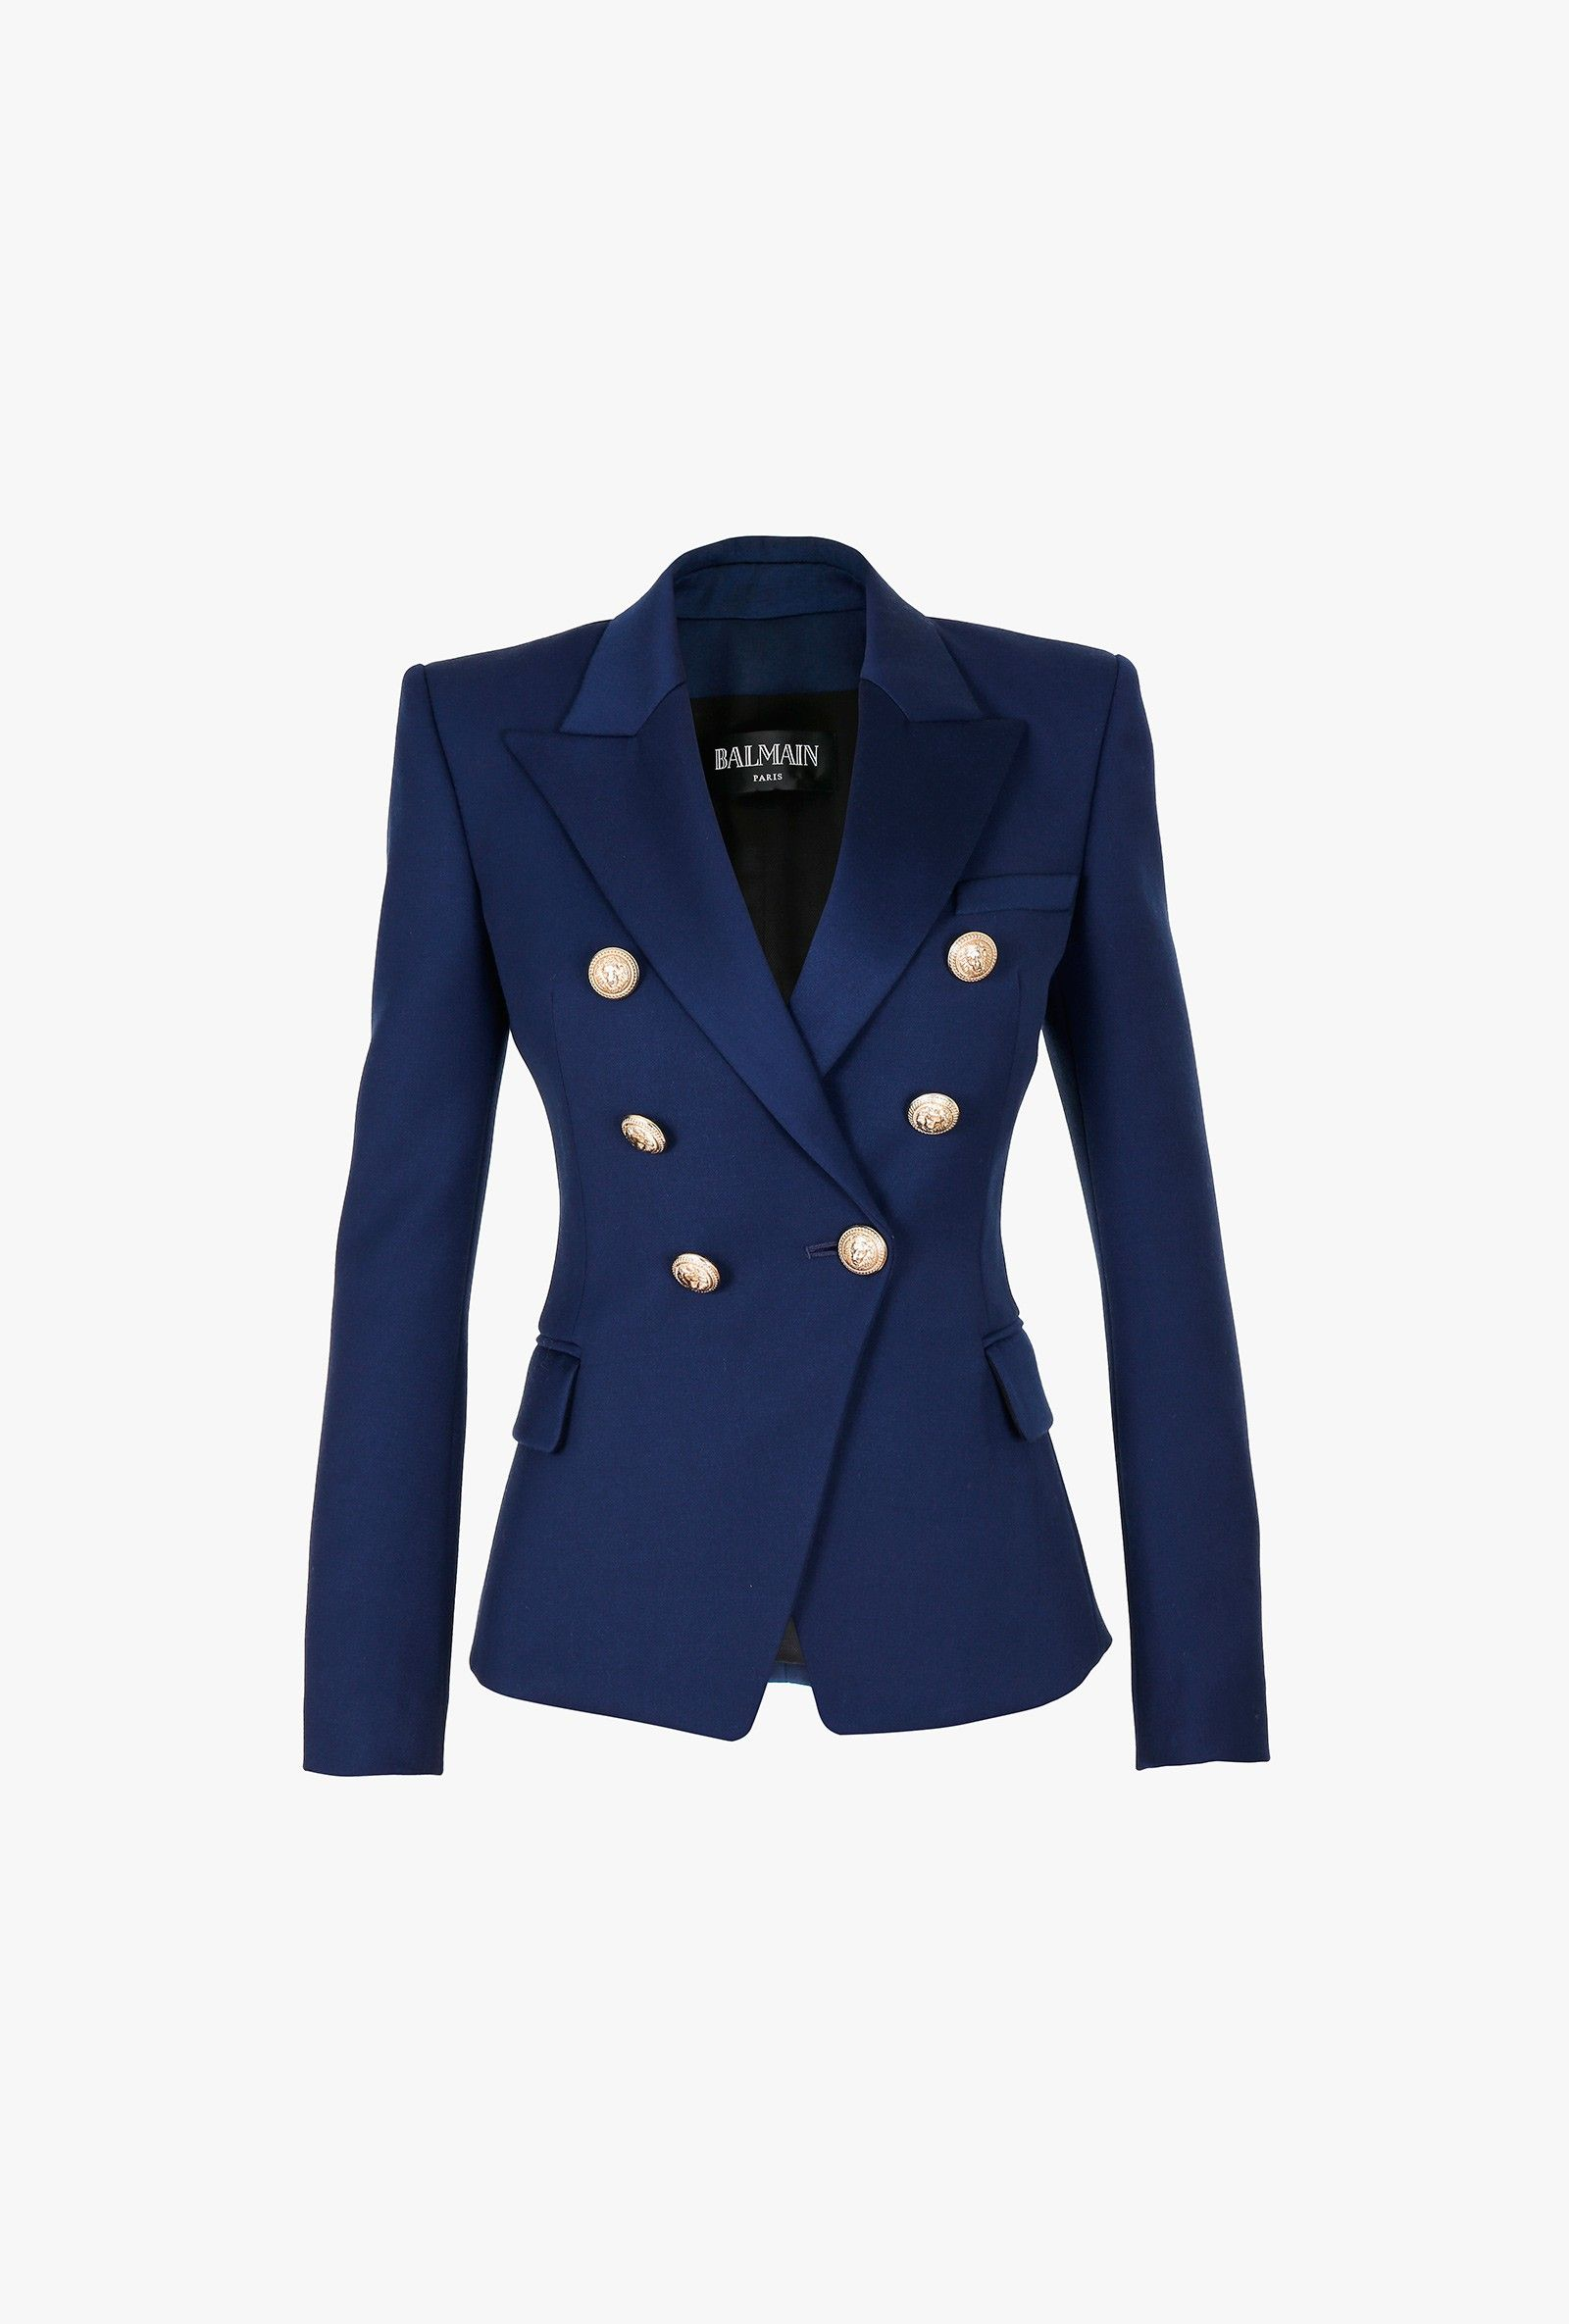 Blazers Analytical Notched Wear Female Suits Blazer Casual Slim Long Sleeve Single Button Blazers White Blue Work Formal Jackets Blazer Feminino